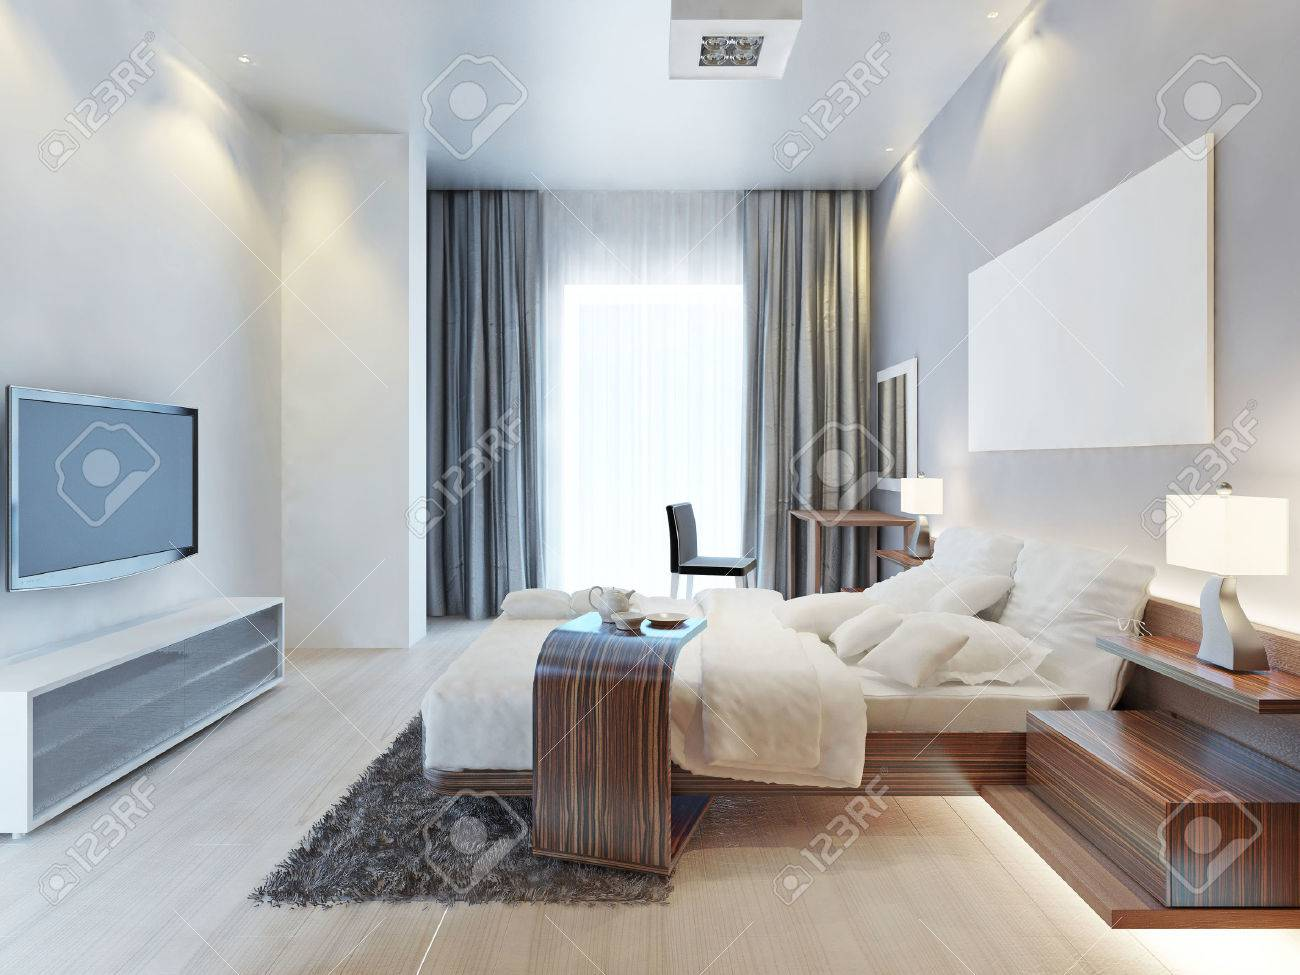 Design Bedroom Contemporary-style Room With Wooden Furniture.. Stock ...